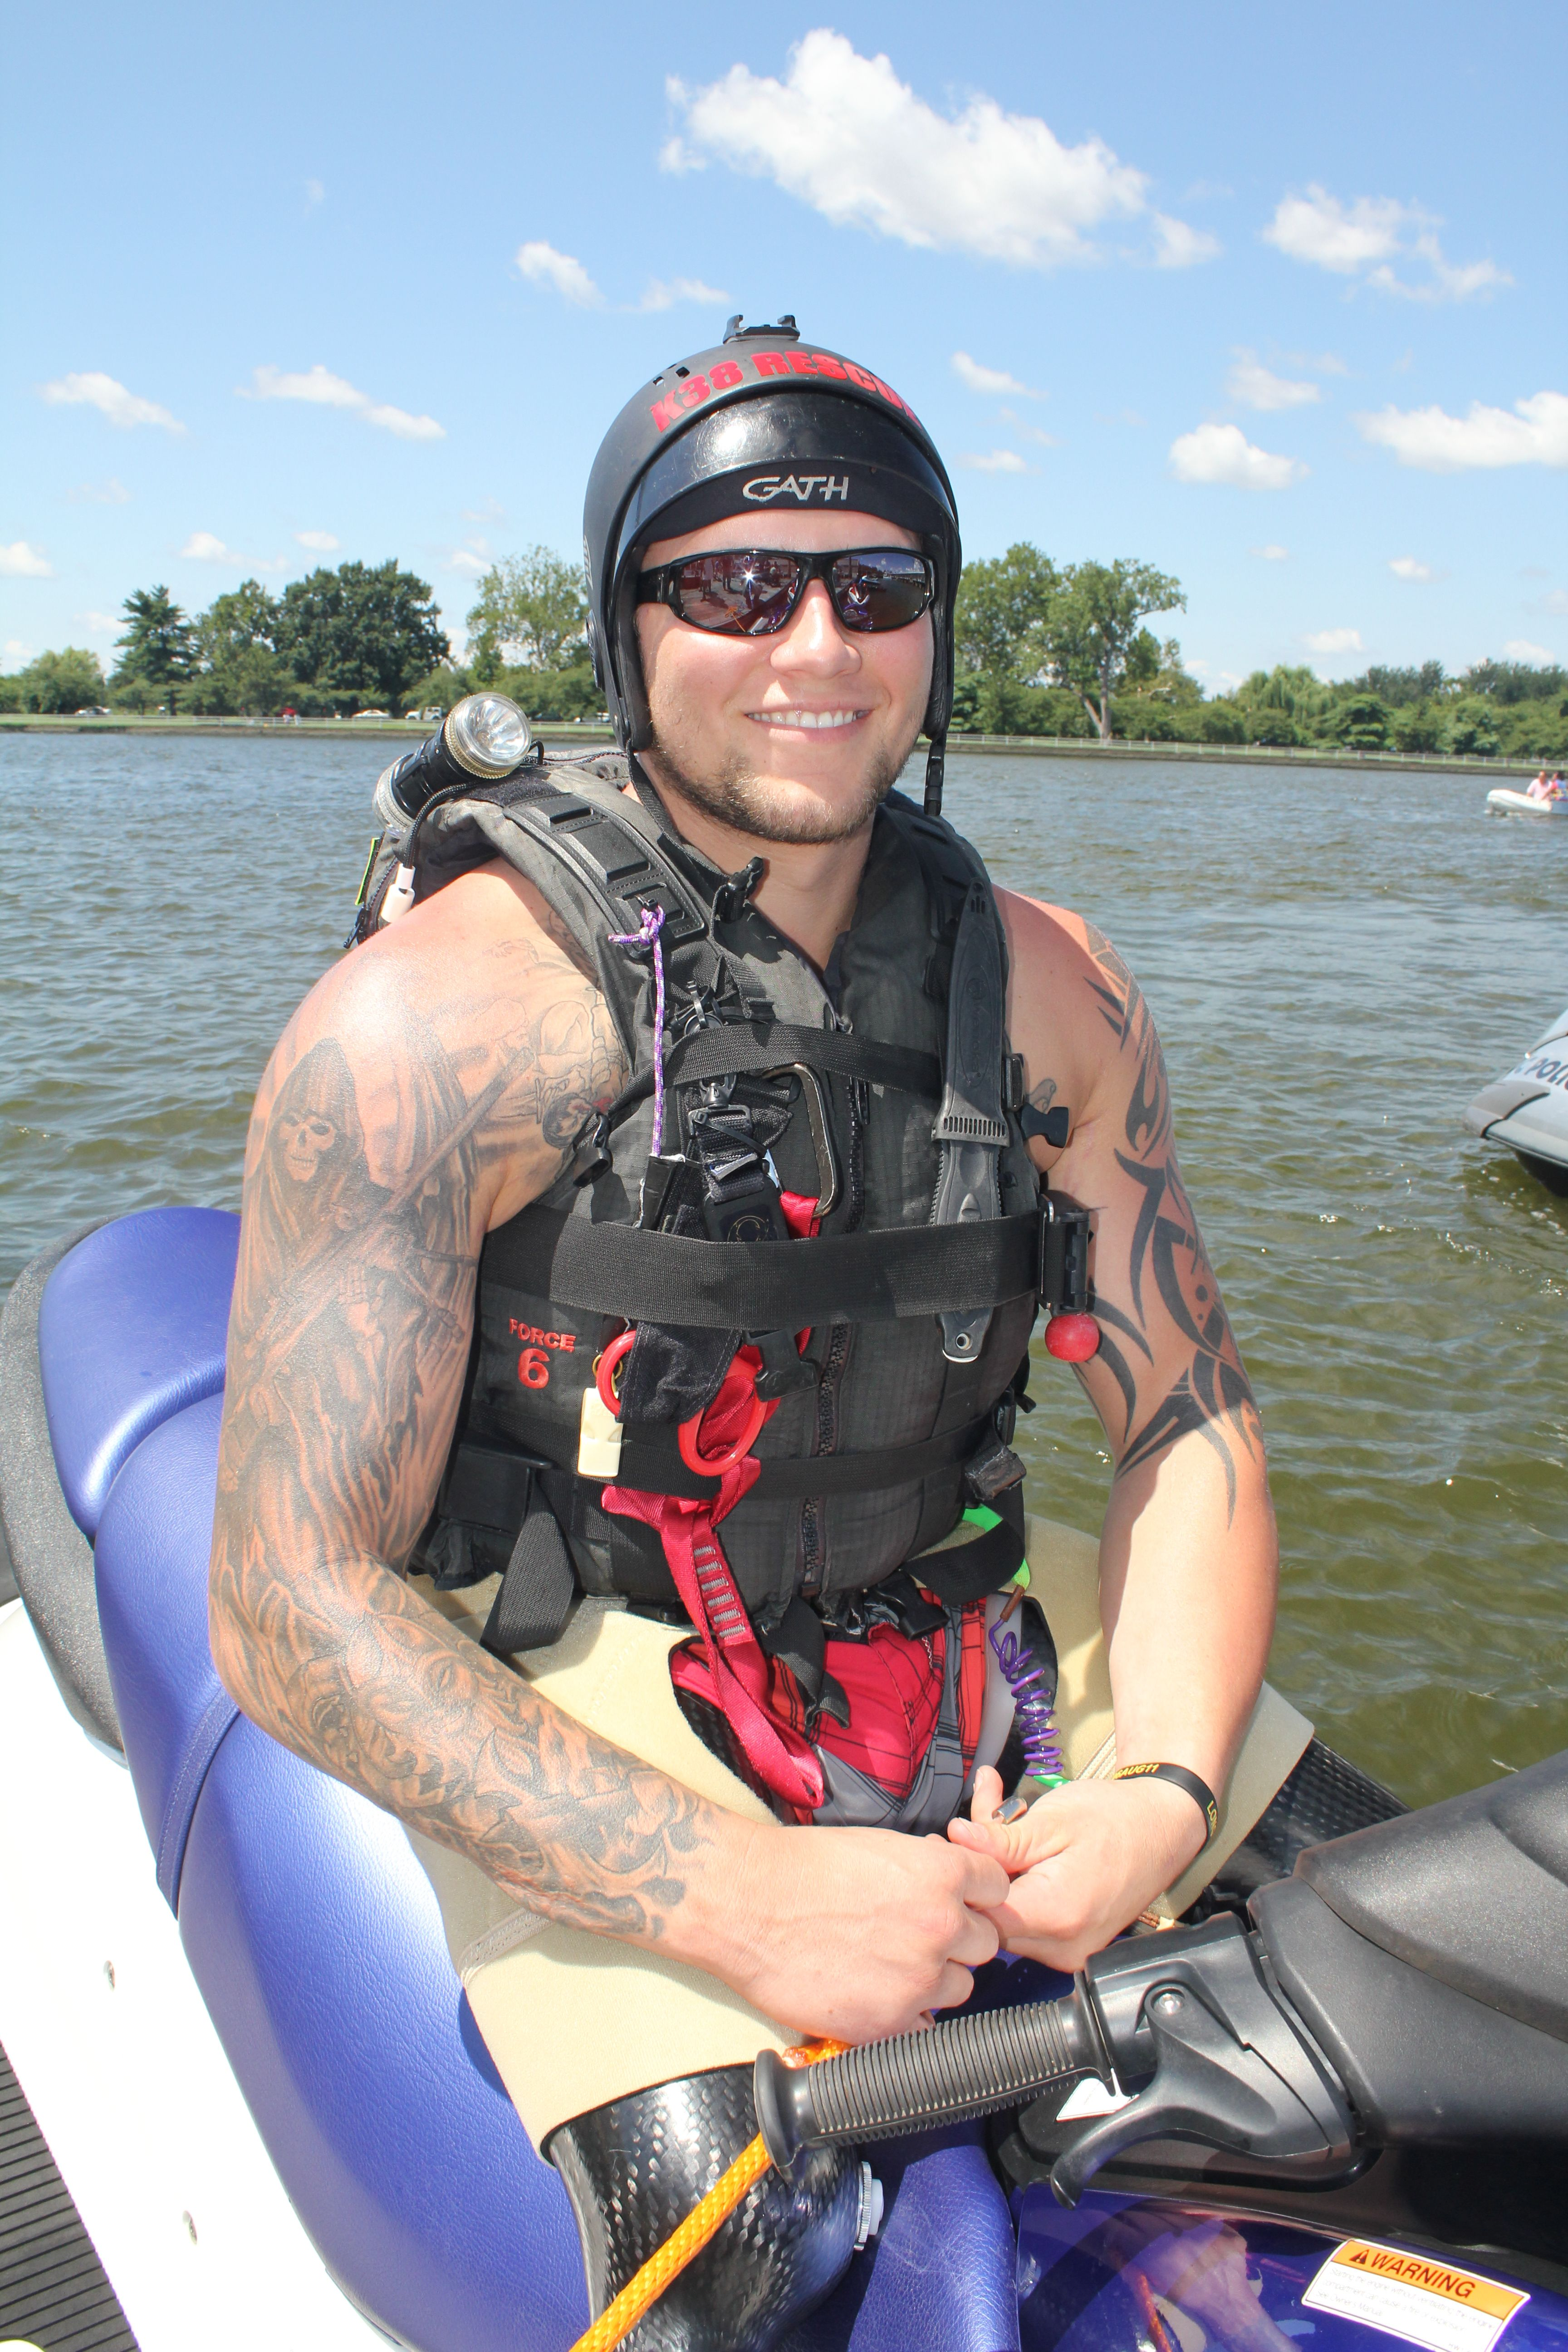 US Navy SEAL Bo Reichenbach Never Quit Challenge Training  US Navy